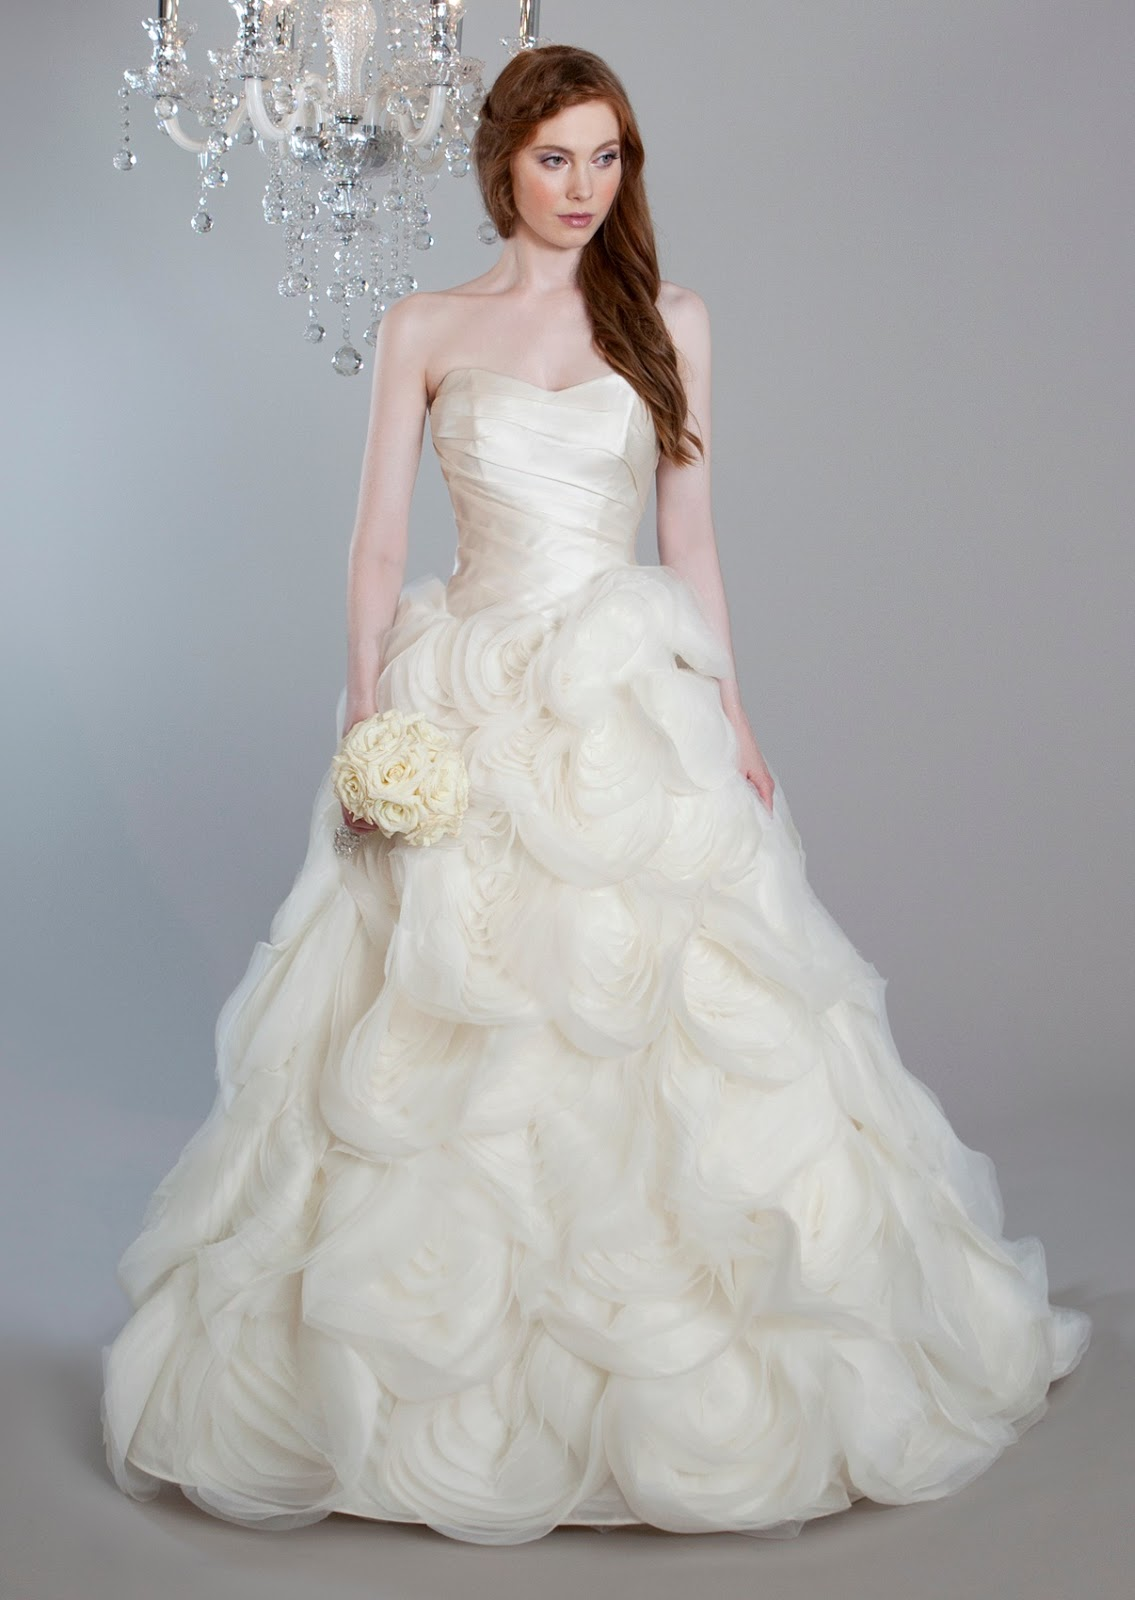 Discount couture wedding dresses wedding dresses for Cheap couture wedding dresses